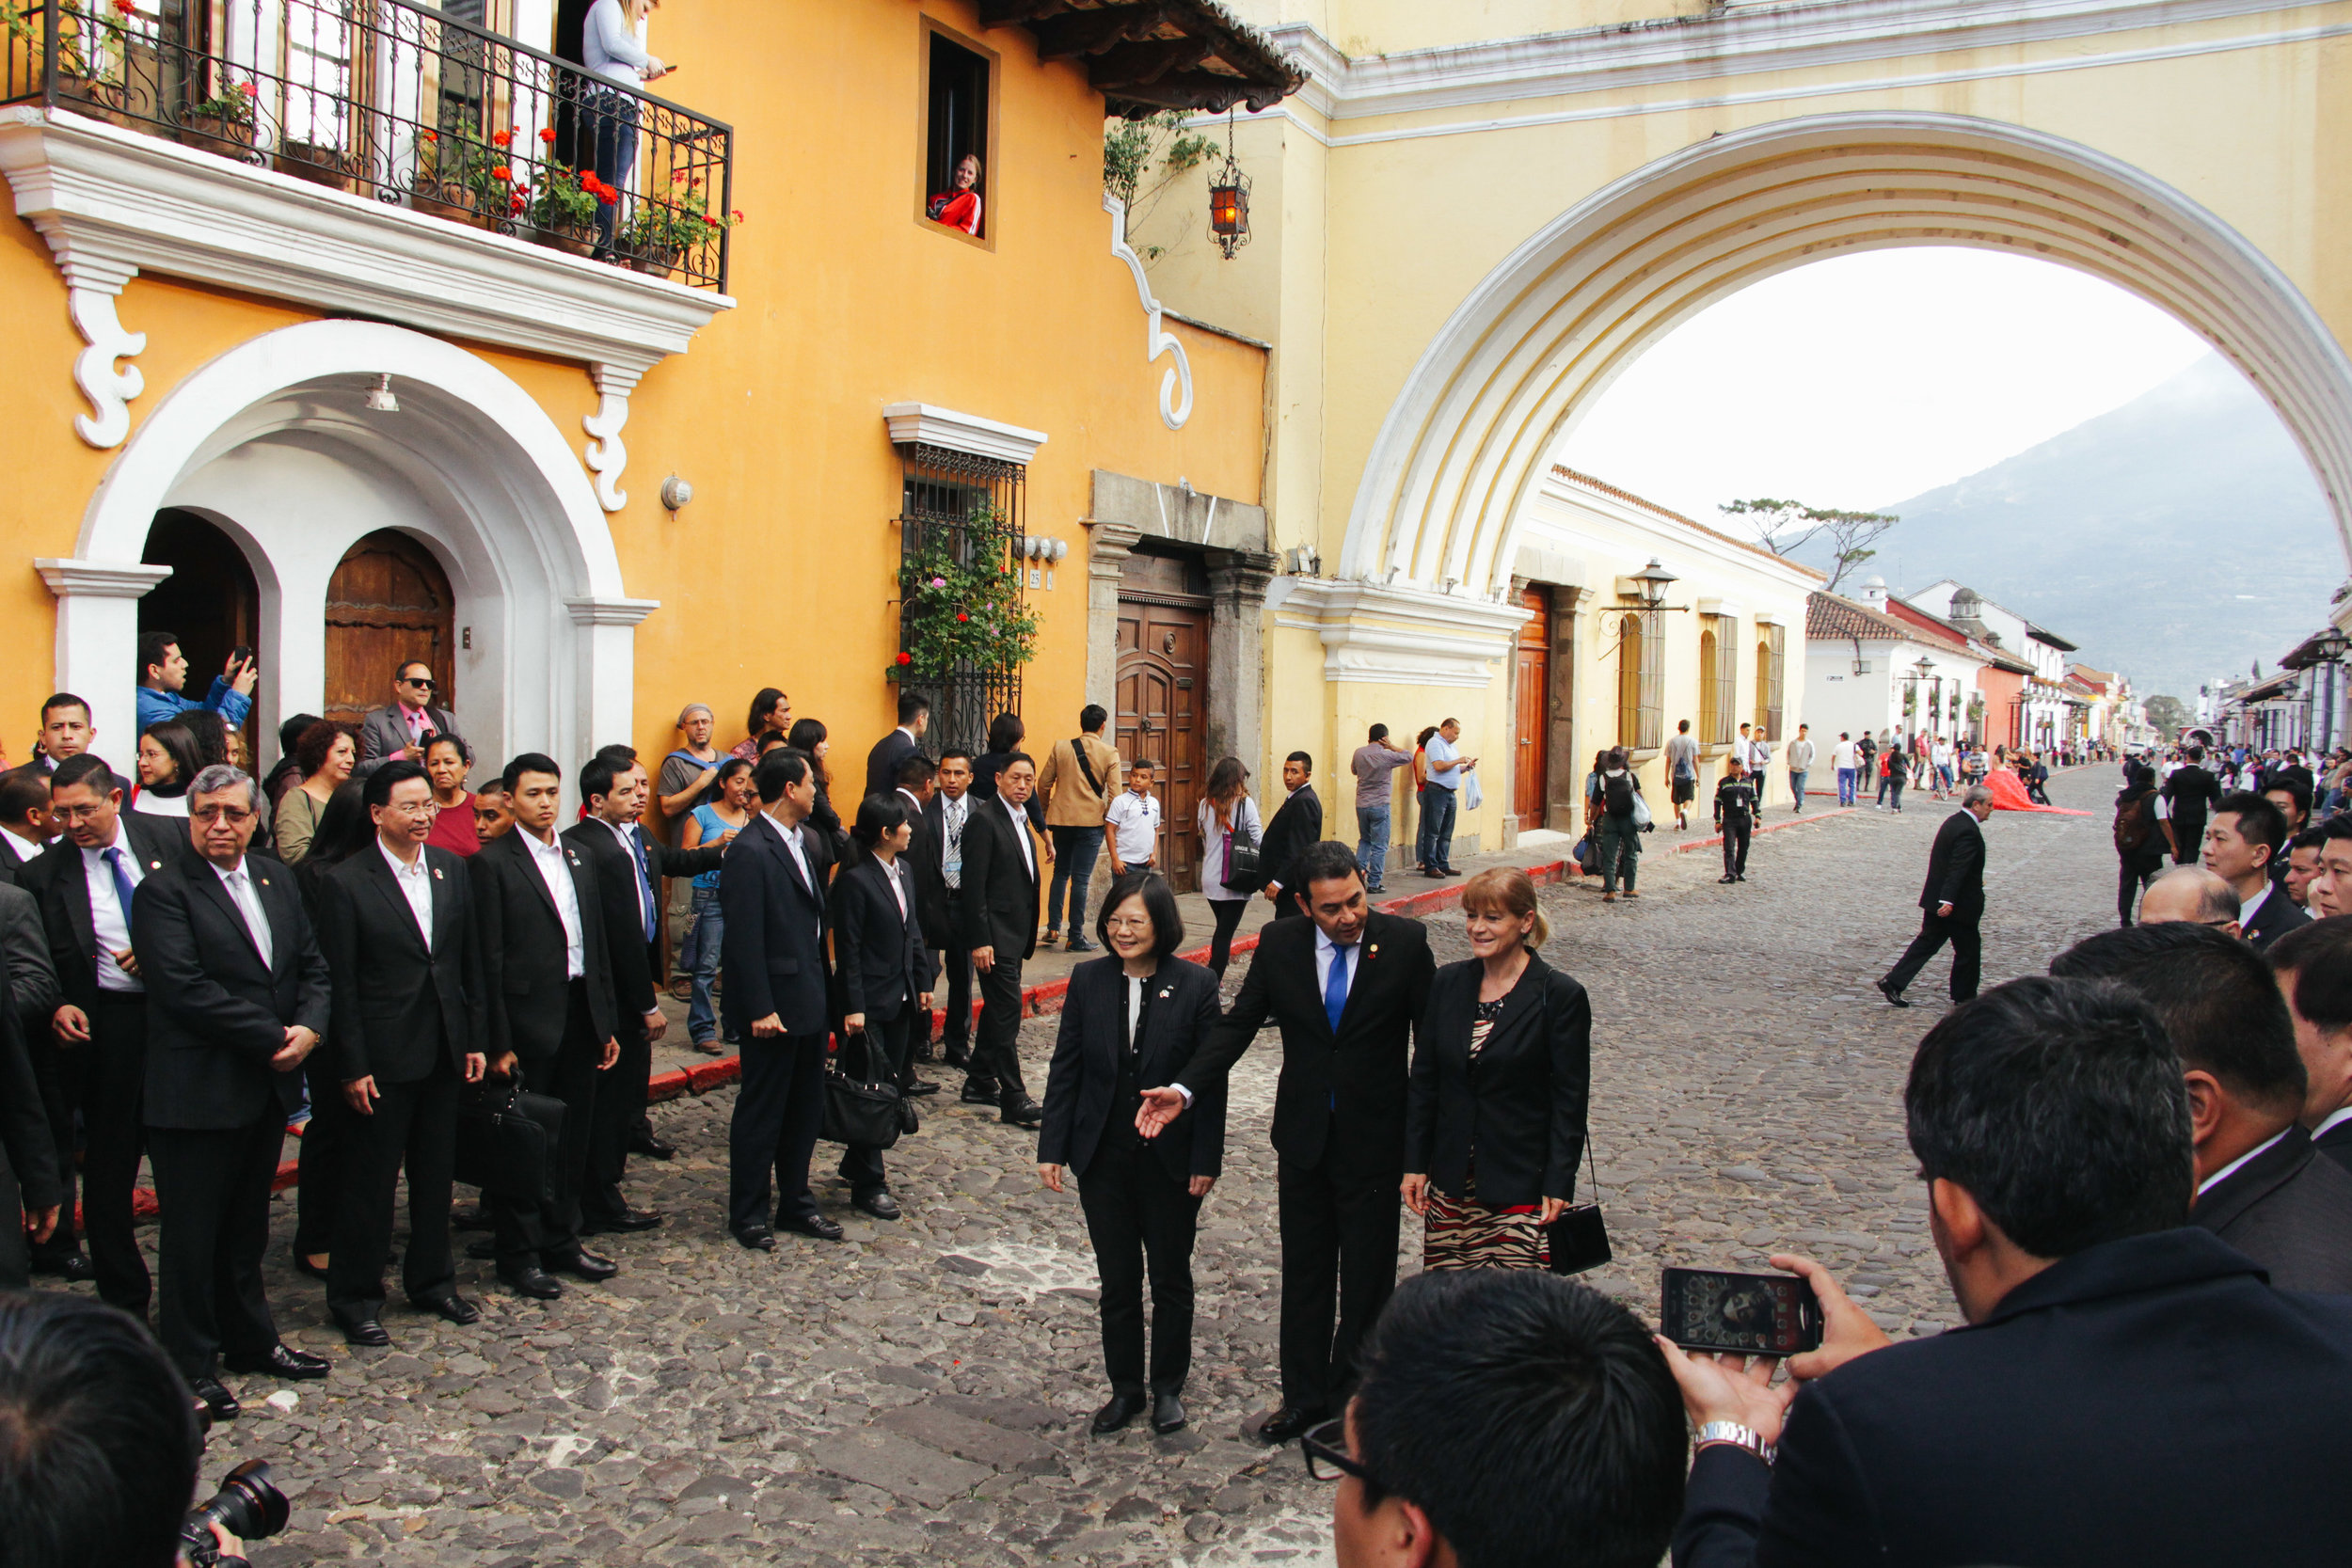 ANTIGUA MAYOR SUSANA ASENSIO ESCORTS TAIWAN DIGNITARIES THROUGH ANTIGUA'S STREETS NEAR CENTRAL PARK.